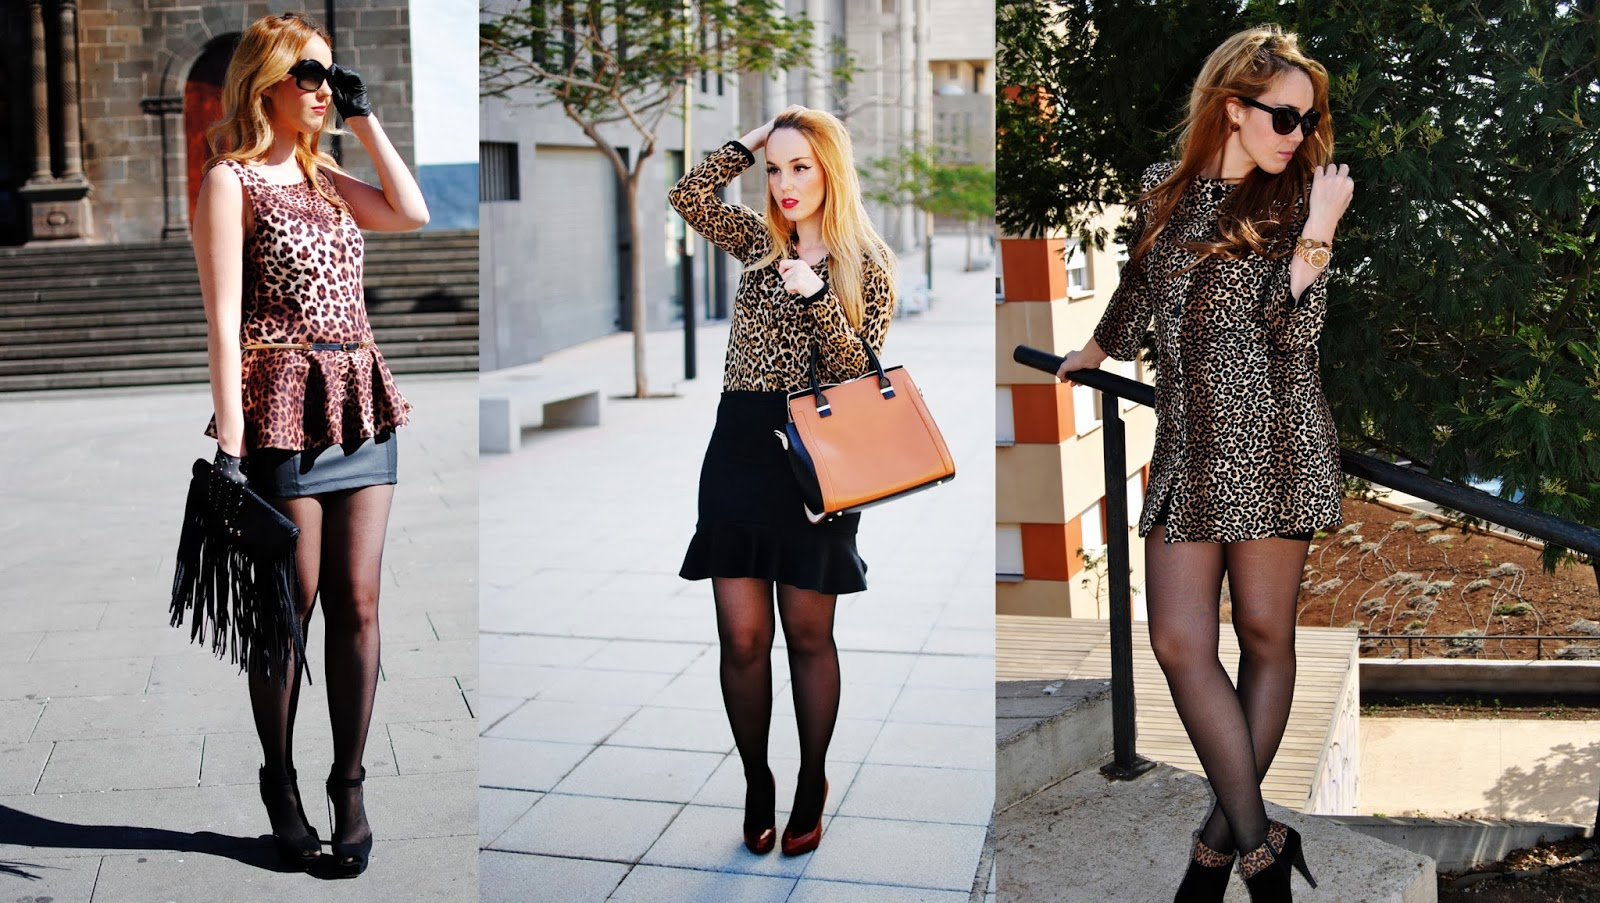 nery hdez, blonde , print animal , gloves, estampado leopardo